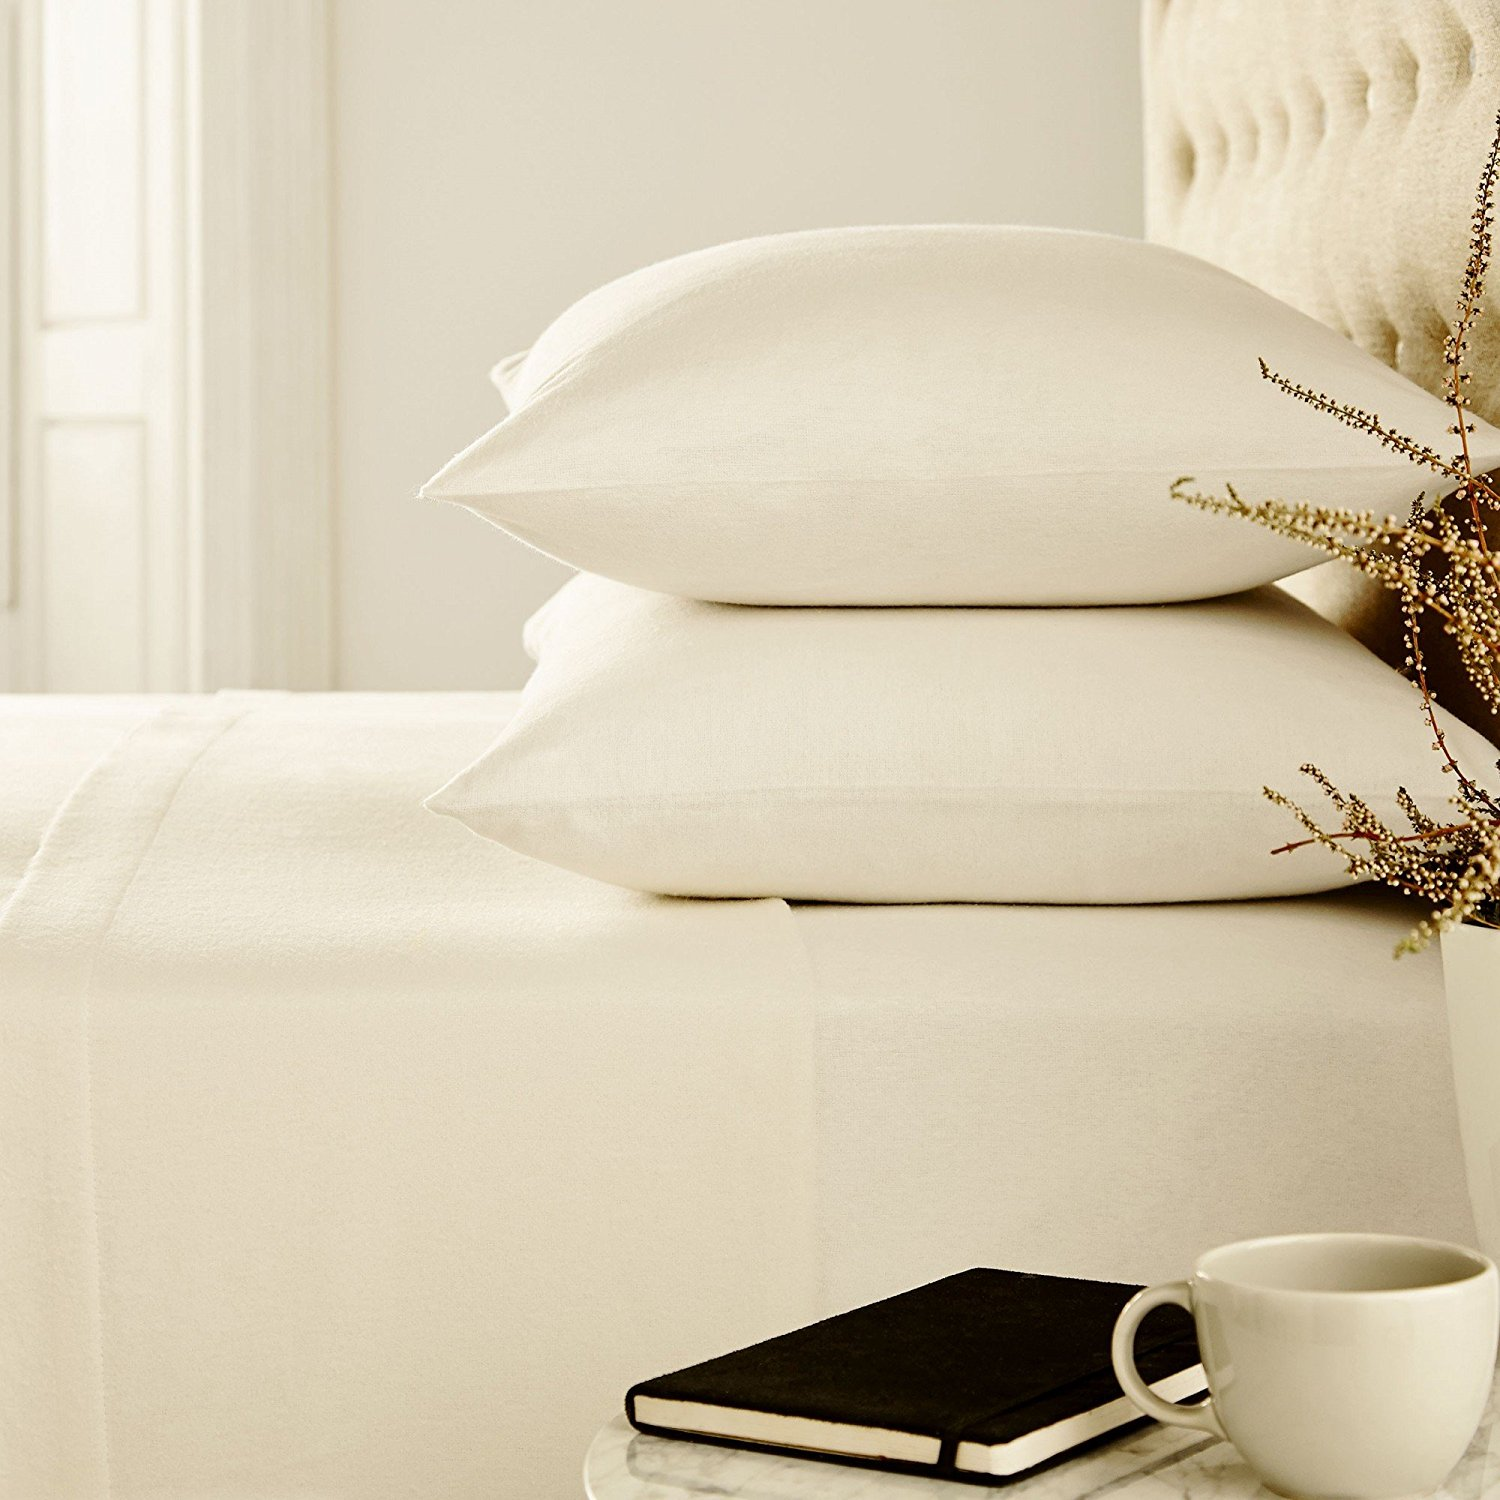 Image of Urban Hut's Egyptian cotton sheets with 700 thread count - High Thread Count Sheets